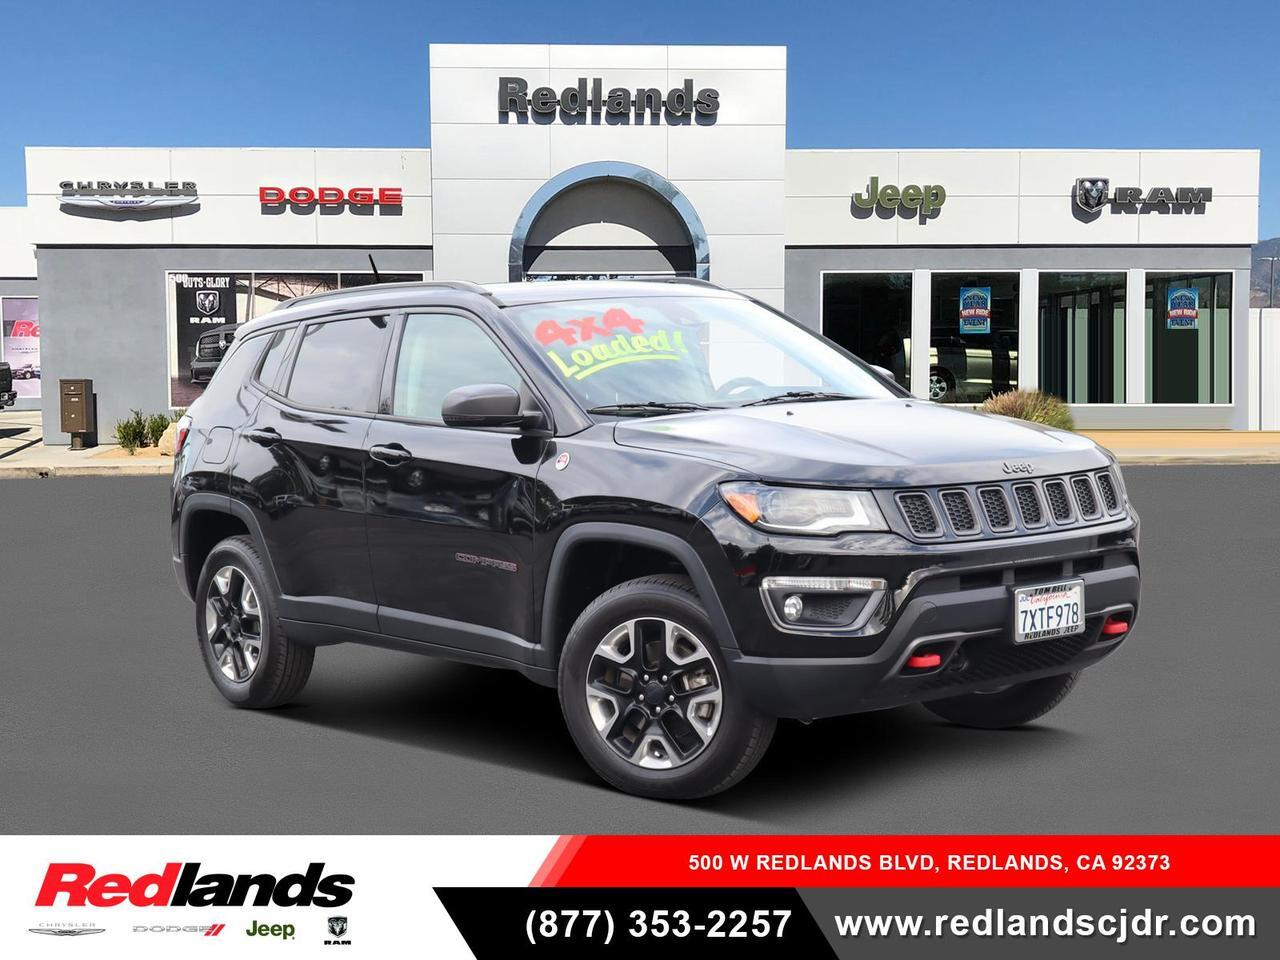 2017 Jeep Compass Trailhawk Redlands CA